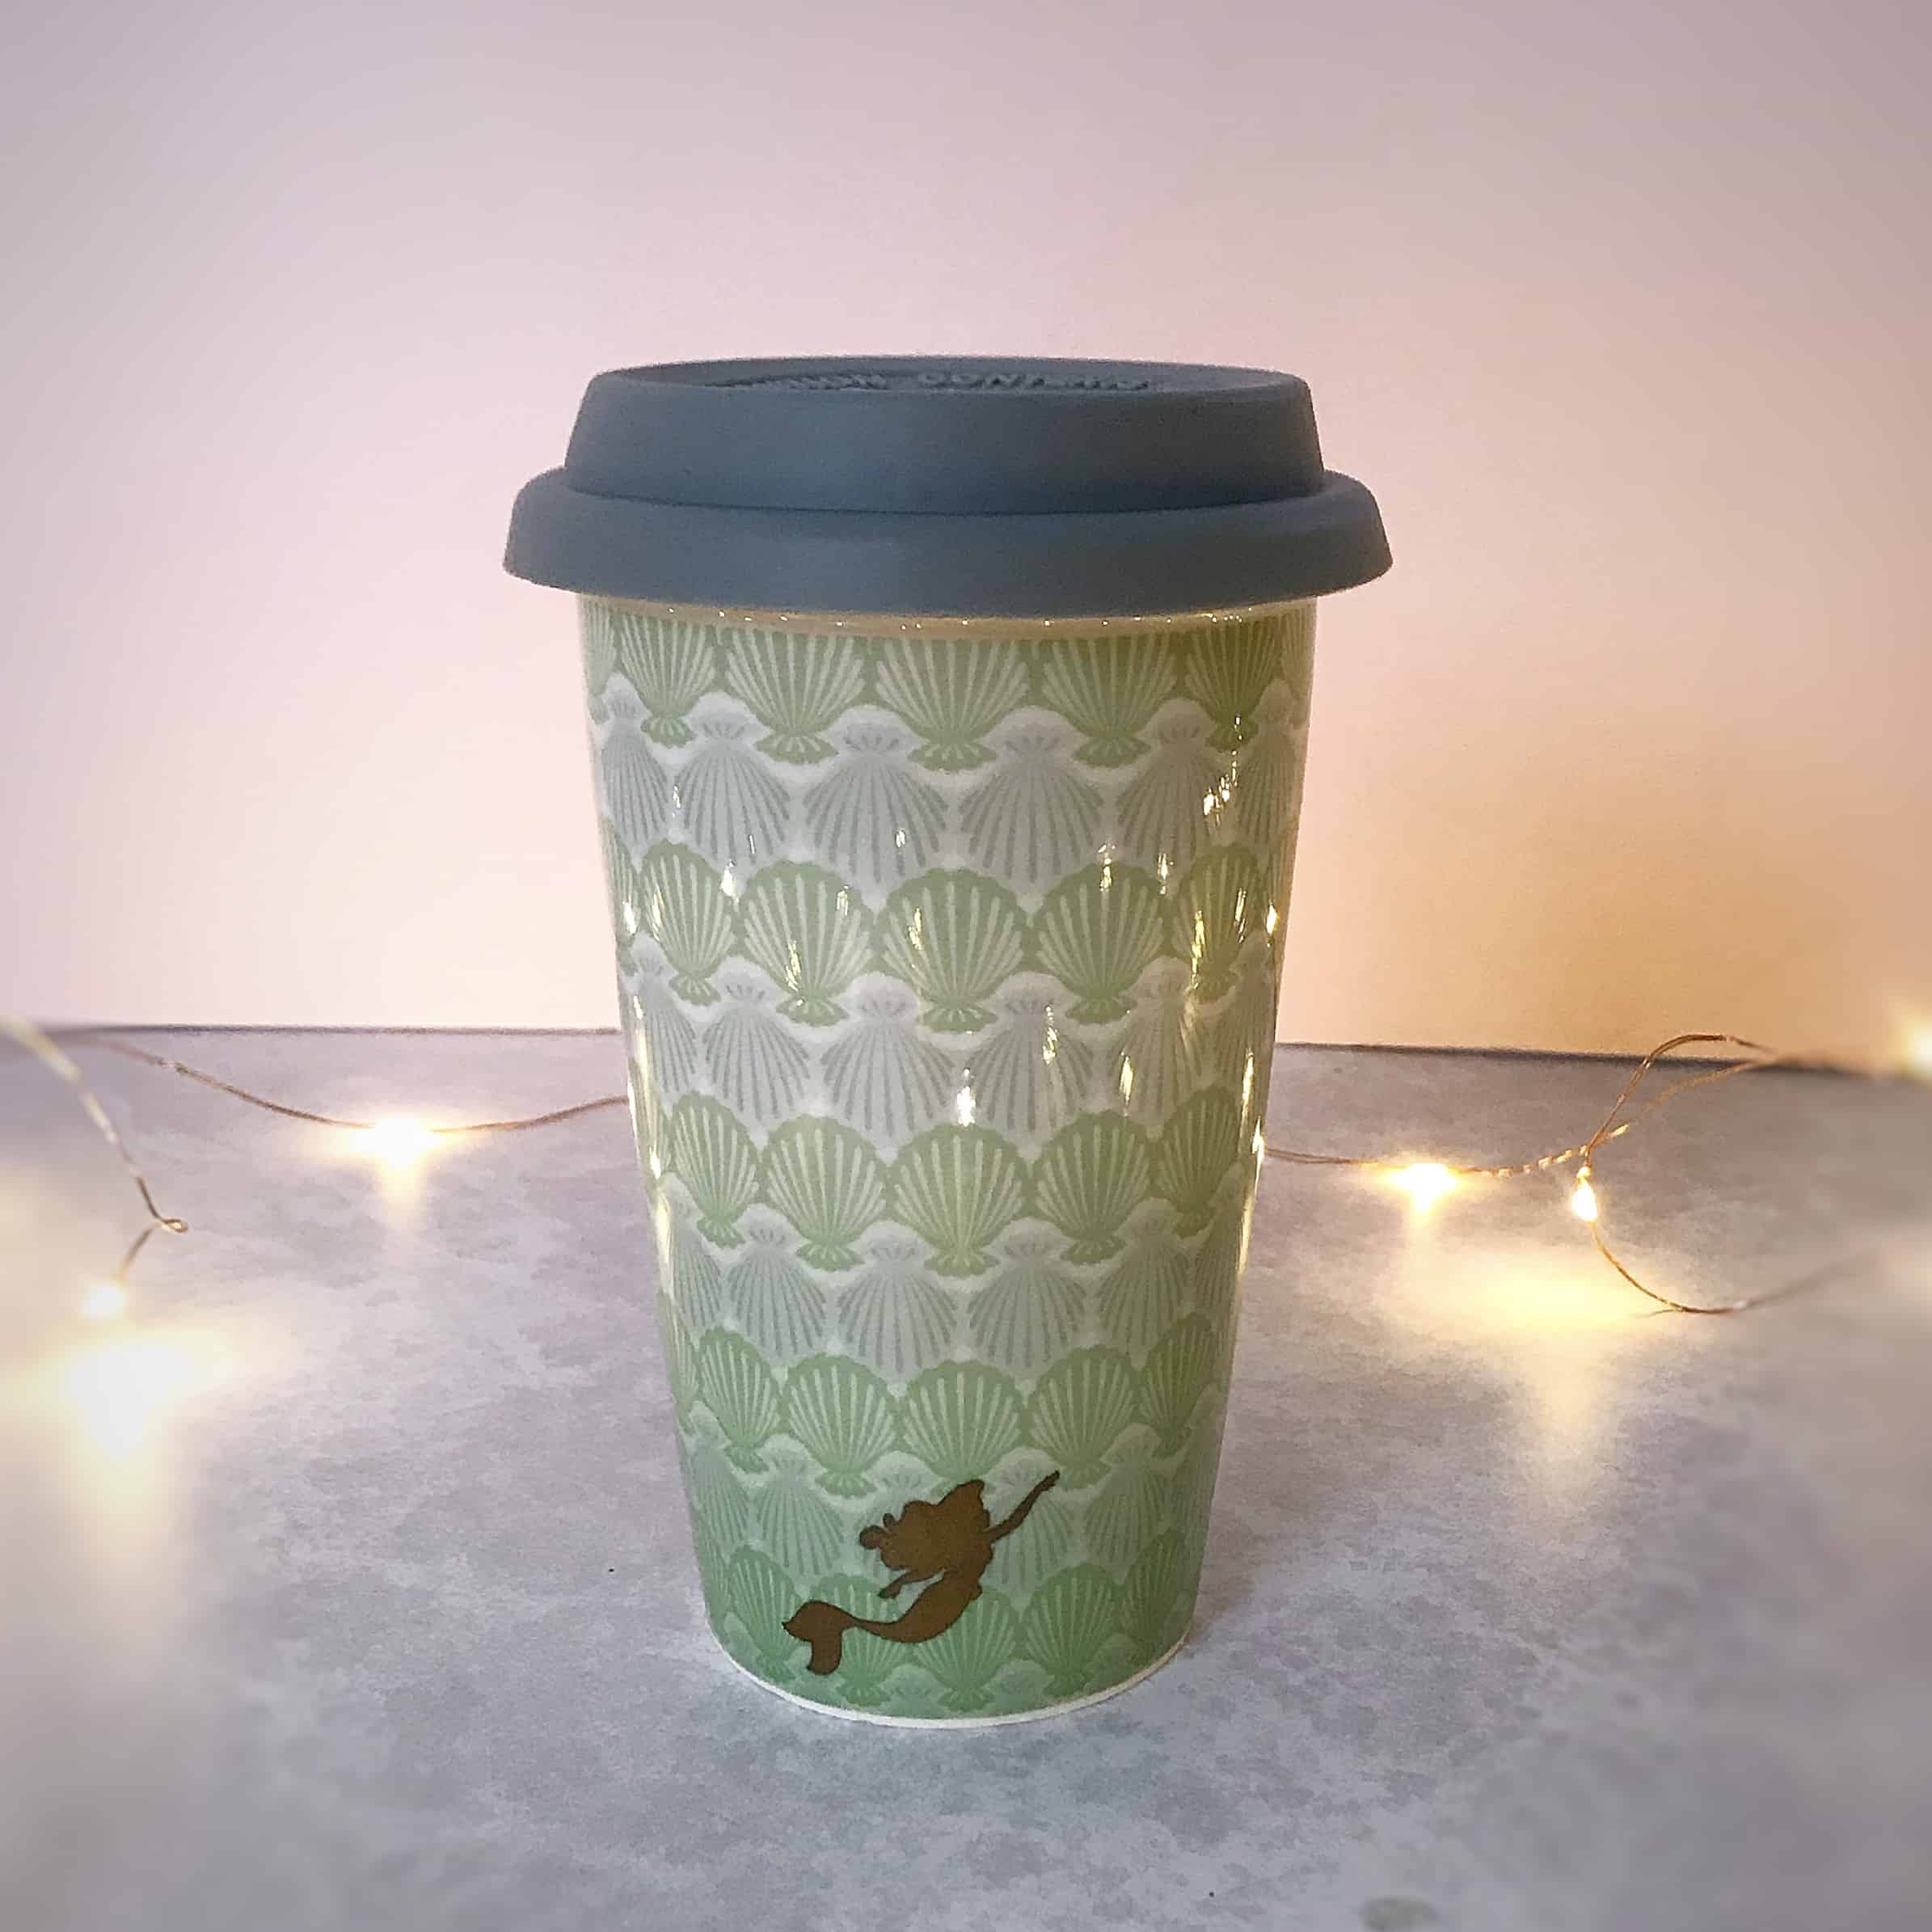 Little Mermaid travel mug